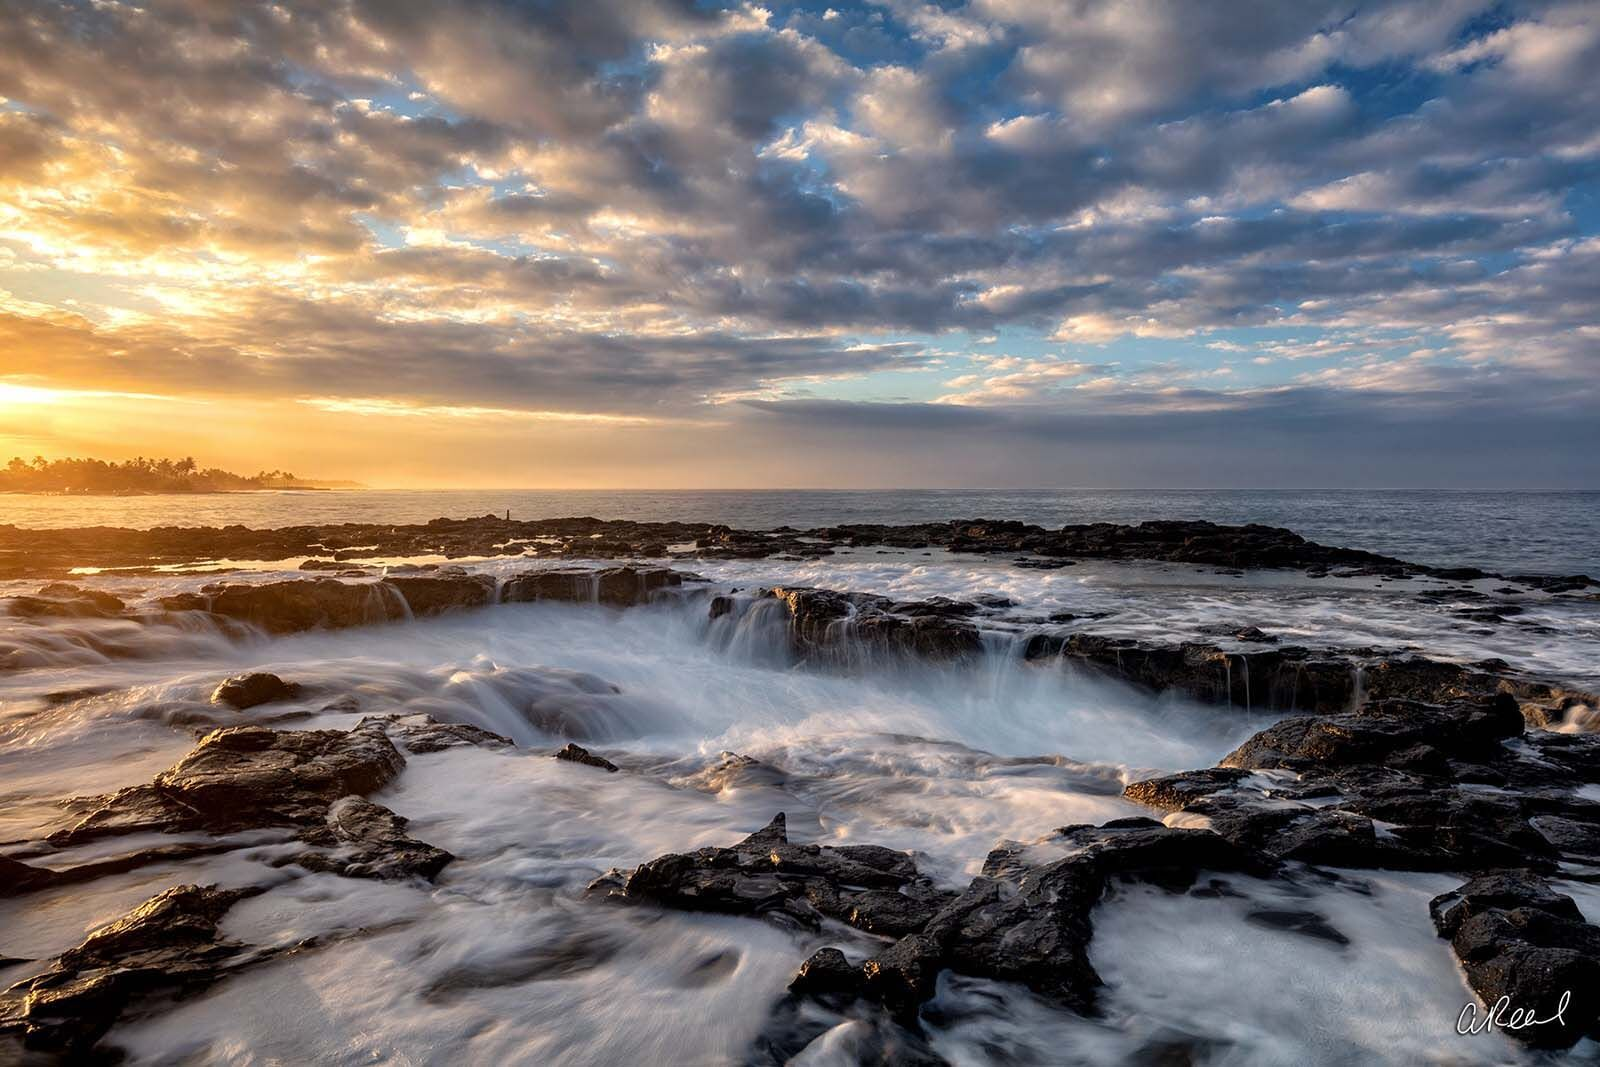 Spouting Horn, Koloa, Hawaii, Kauai, Fine Art, Ocean, Limited Edition, Sea, Coastline, Waves, Lava, Rocks, , photo